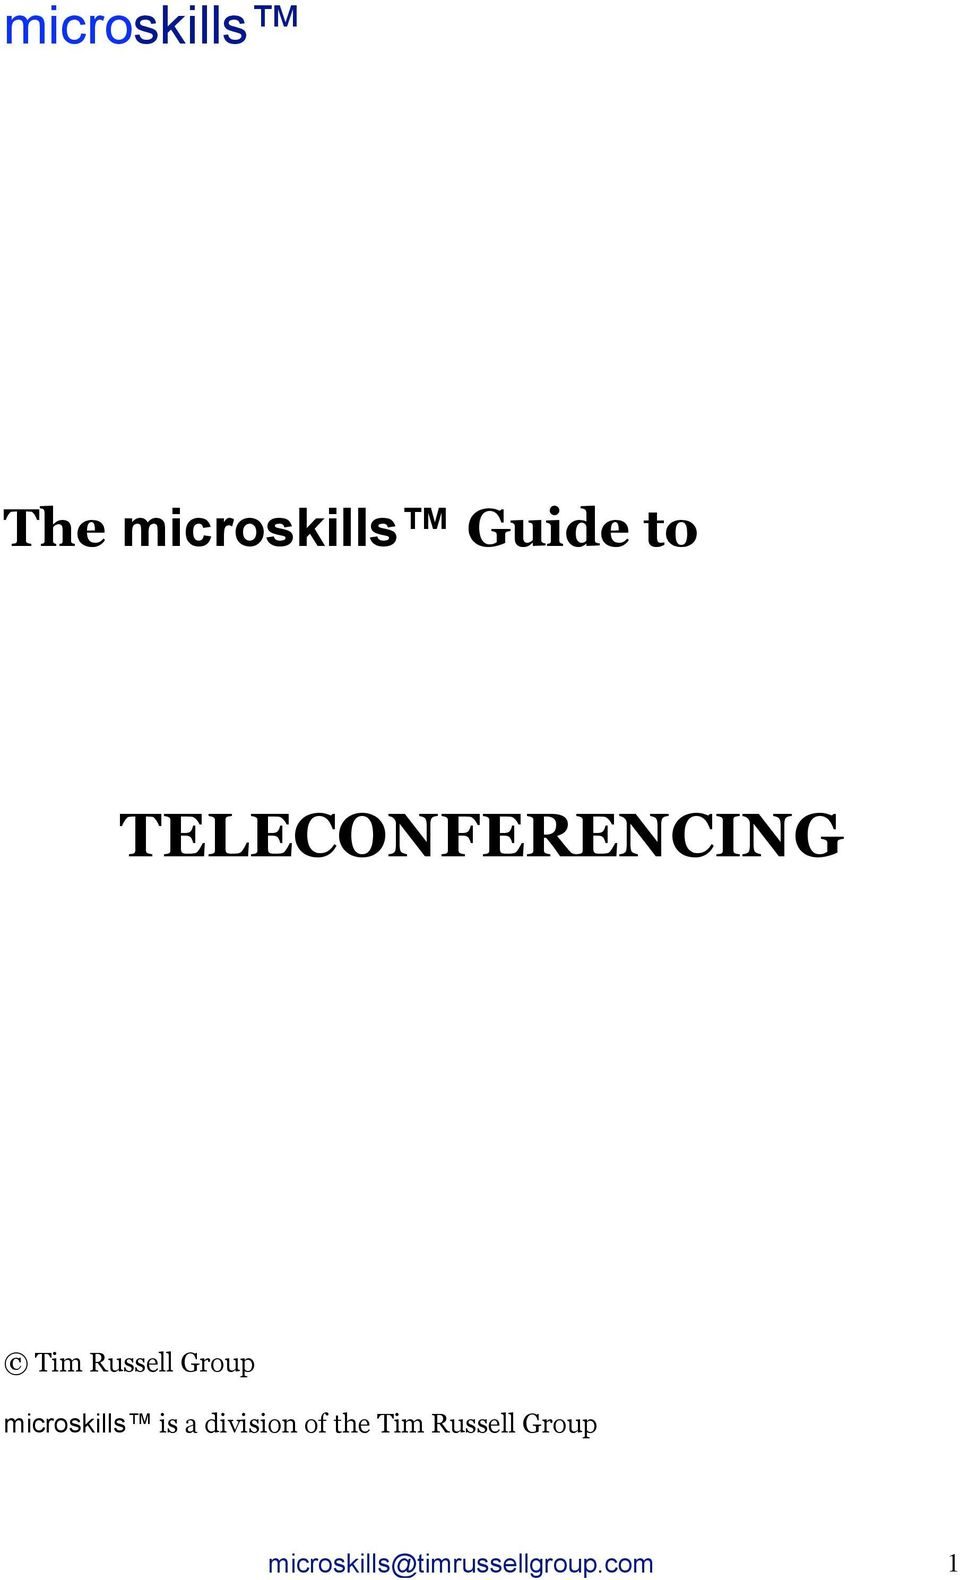 microskills is a division of the